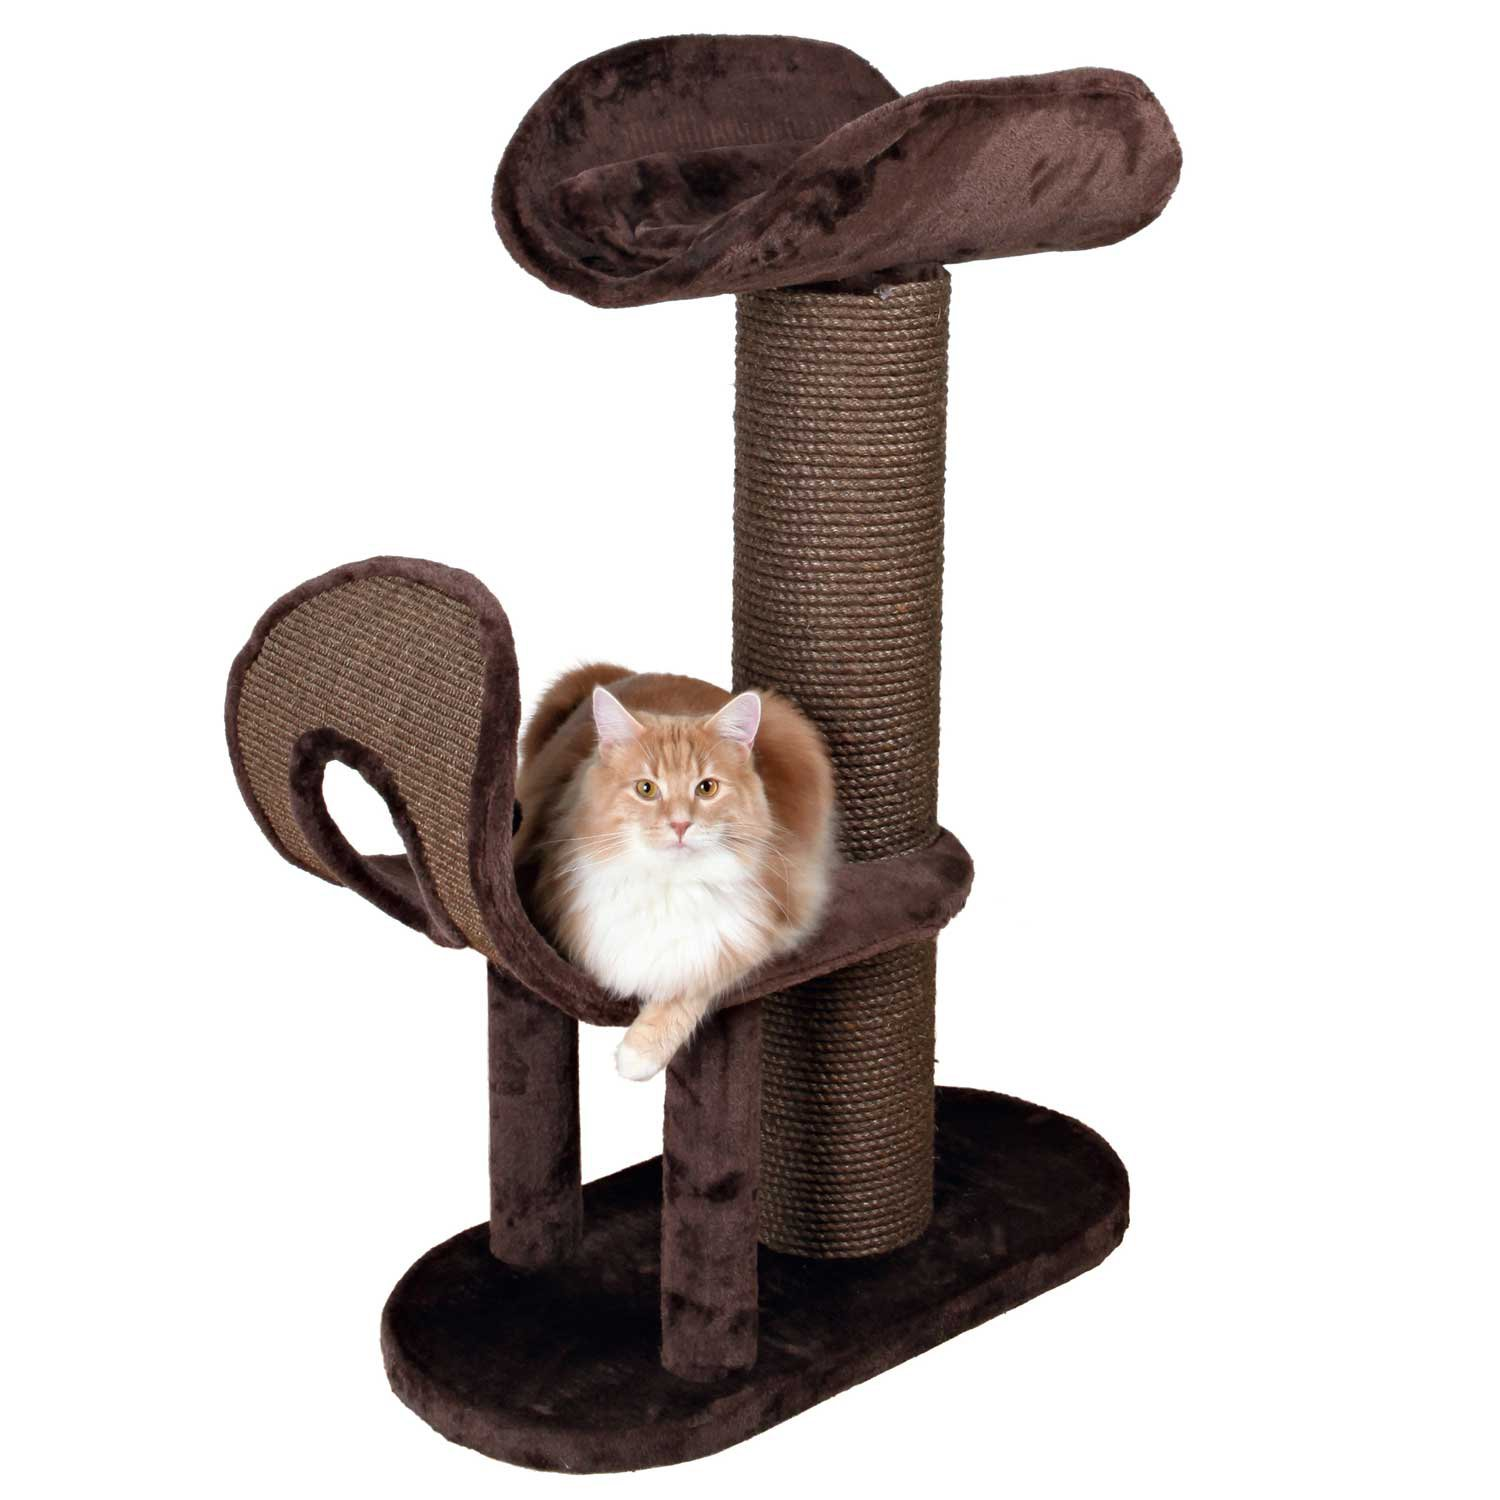 Trixie Ramirez Cat Tree in Chocolate Brown